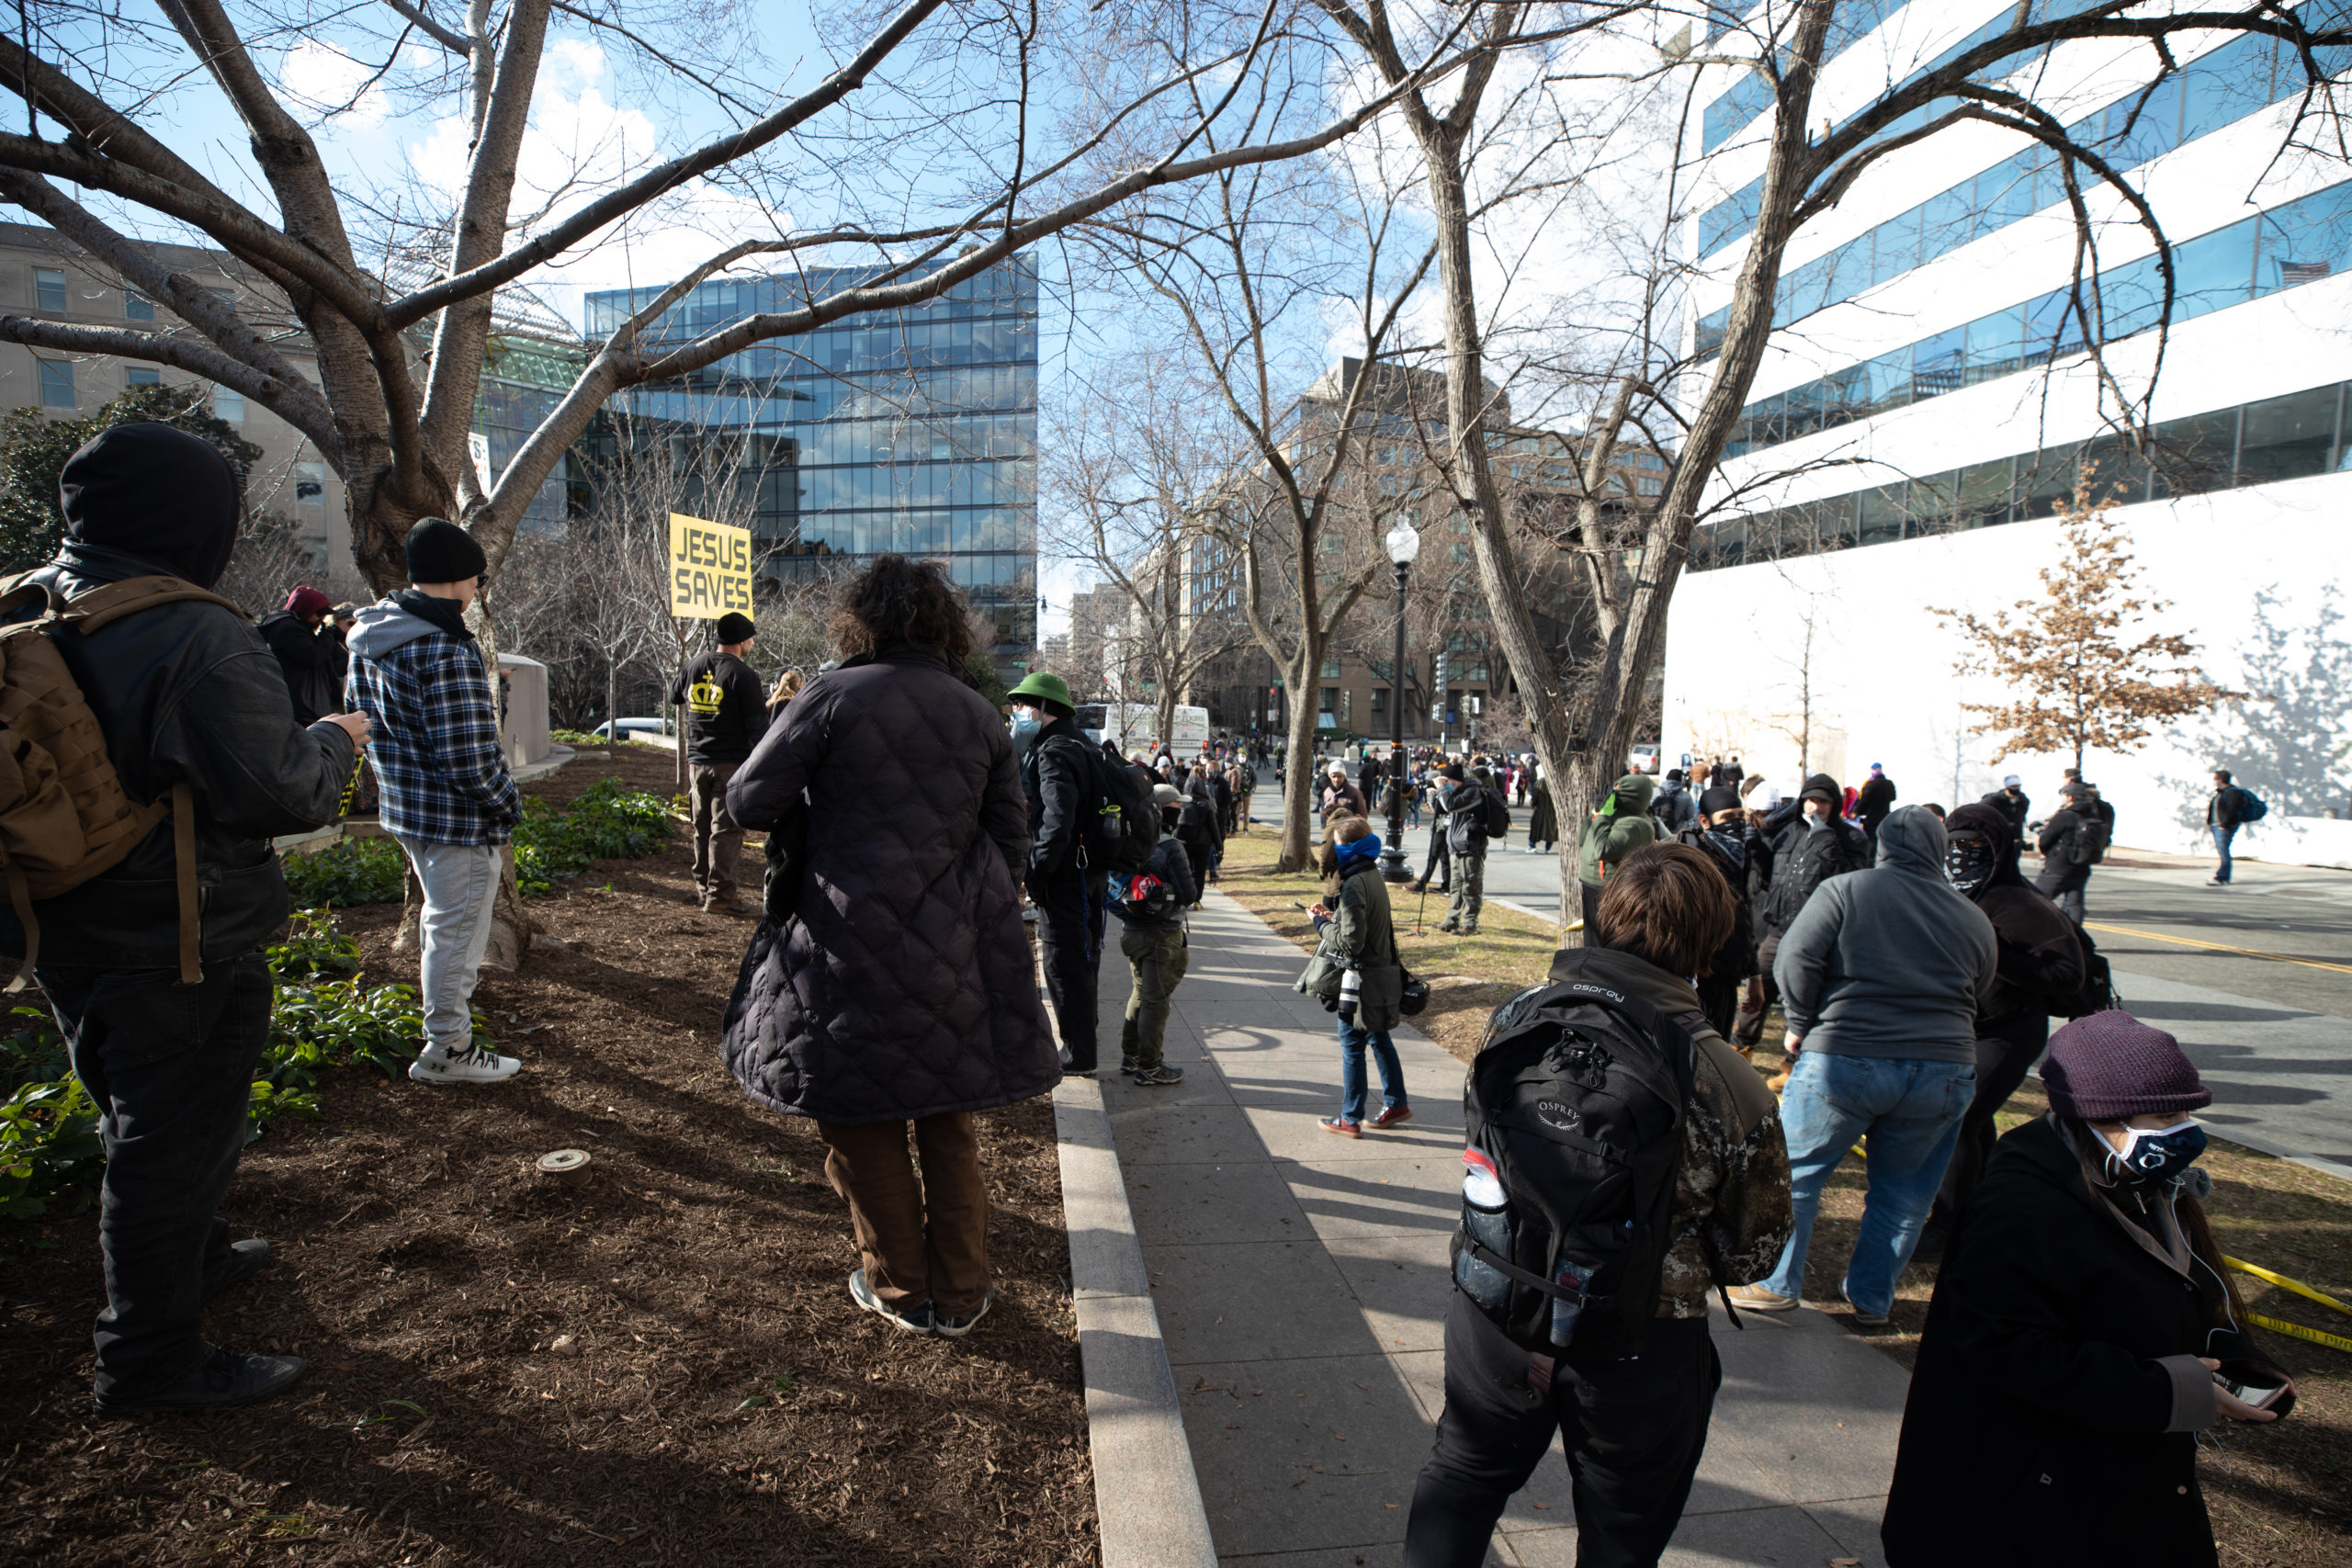 Several religious demonstrators gathered near Union Station in Washington, D.C. on Jan. 20, 2021. (Kaylee Greenlee - Daily Caller News Foundation)